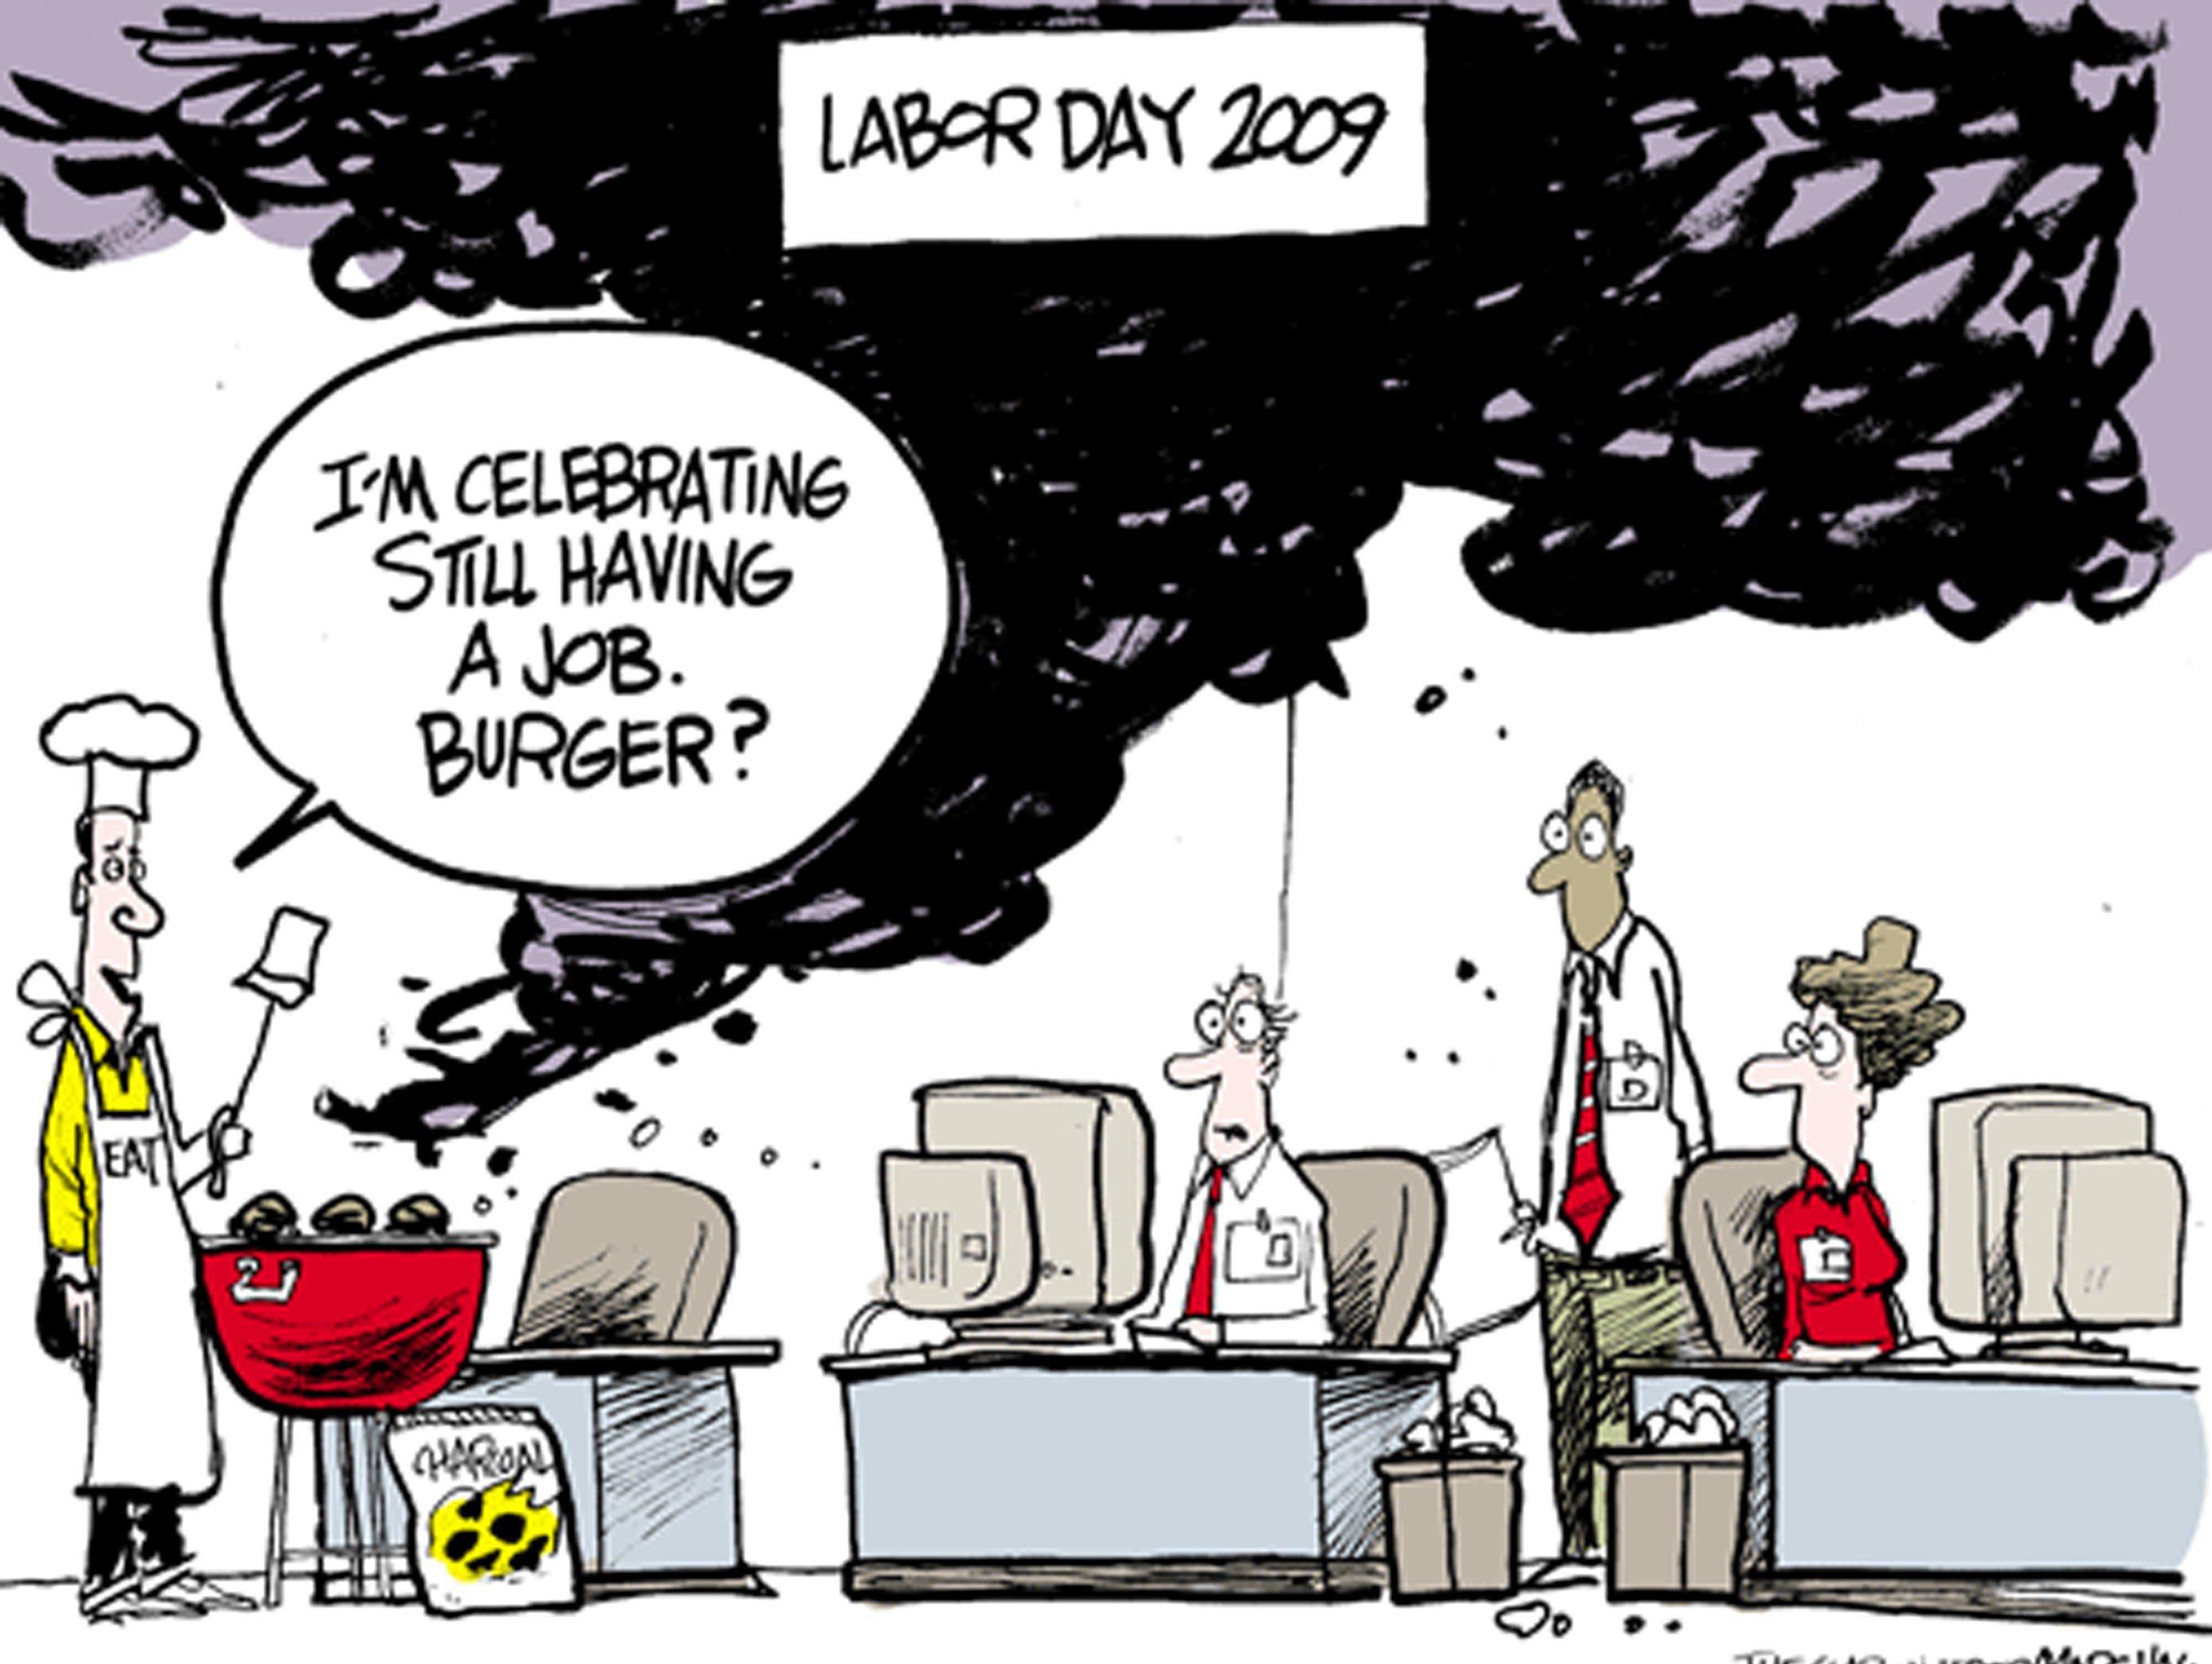 First published for Labor Day 2009. The cartoonist's homepage, clarionledger.com/opinion